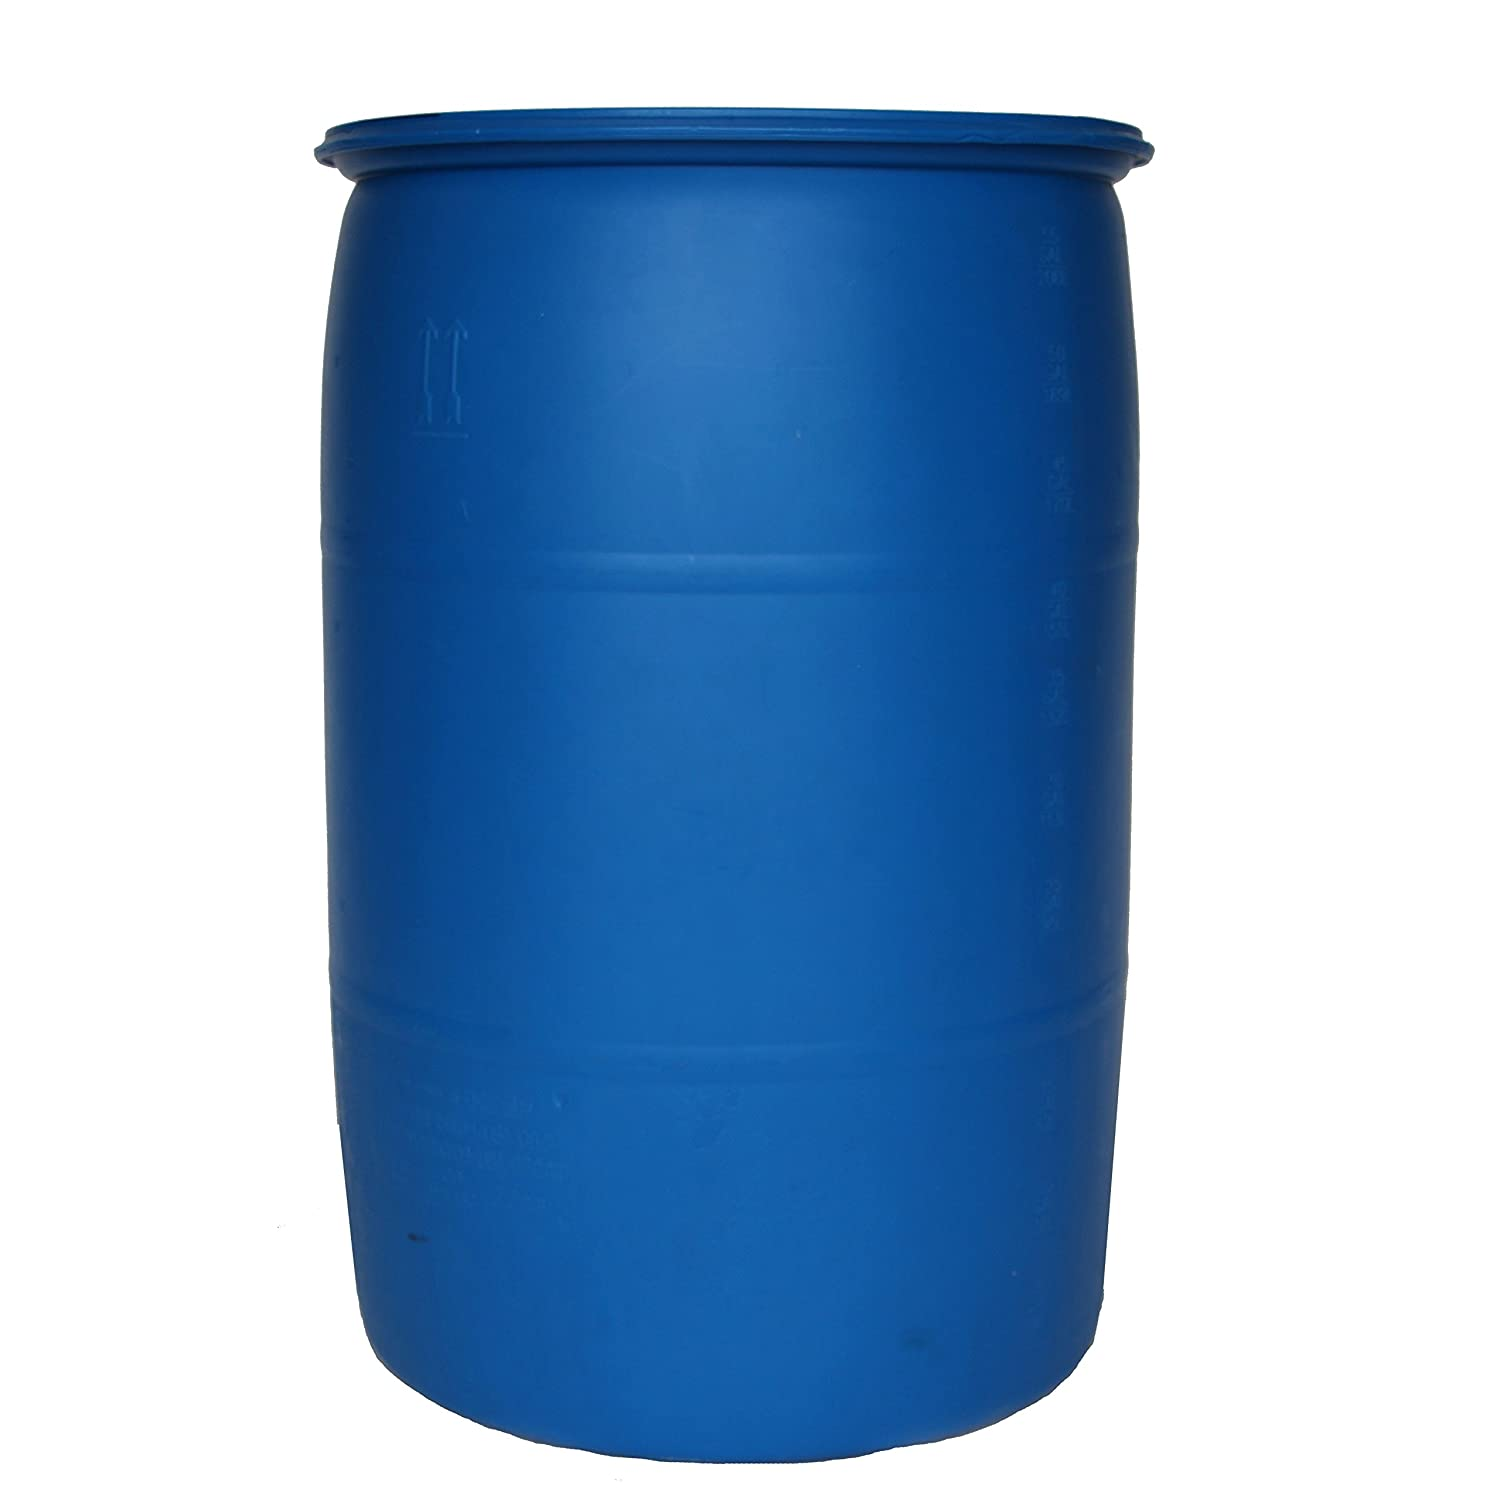 Amazon.com  Augason Farms Water Storage Barrel 55-Gallon Drum  Sports u0026 Outdoors  sc 1 st  Amazon.com & Amazon.com : Augason Farms Water Storage Barrel 55-Gallon Drum ...